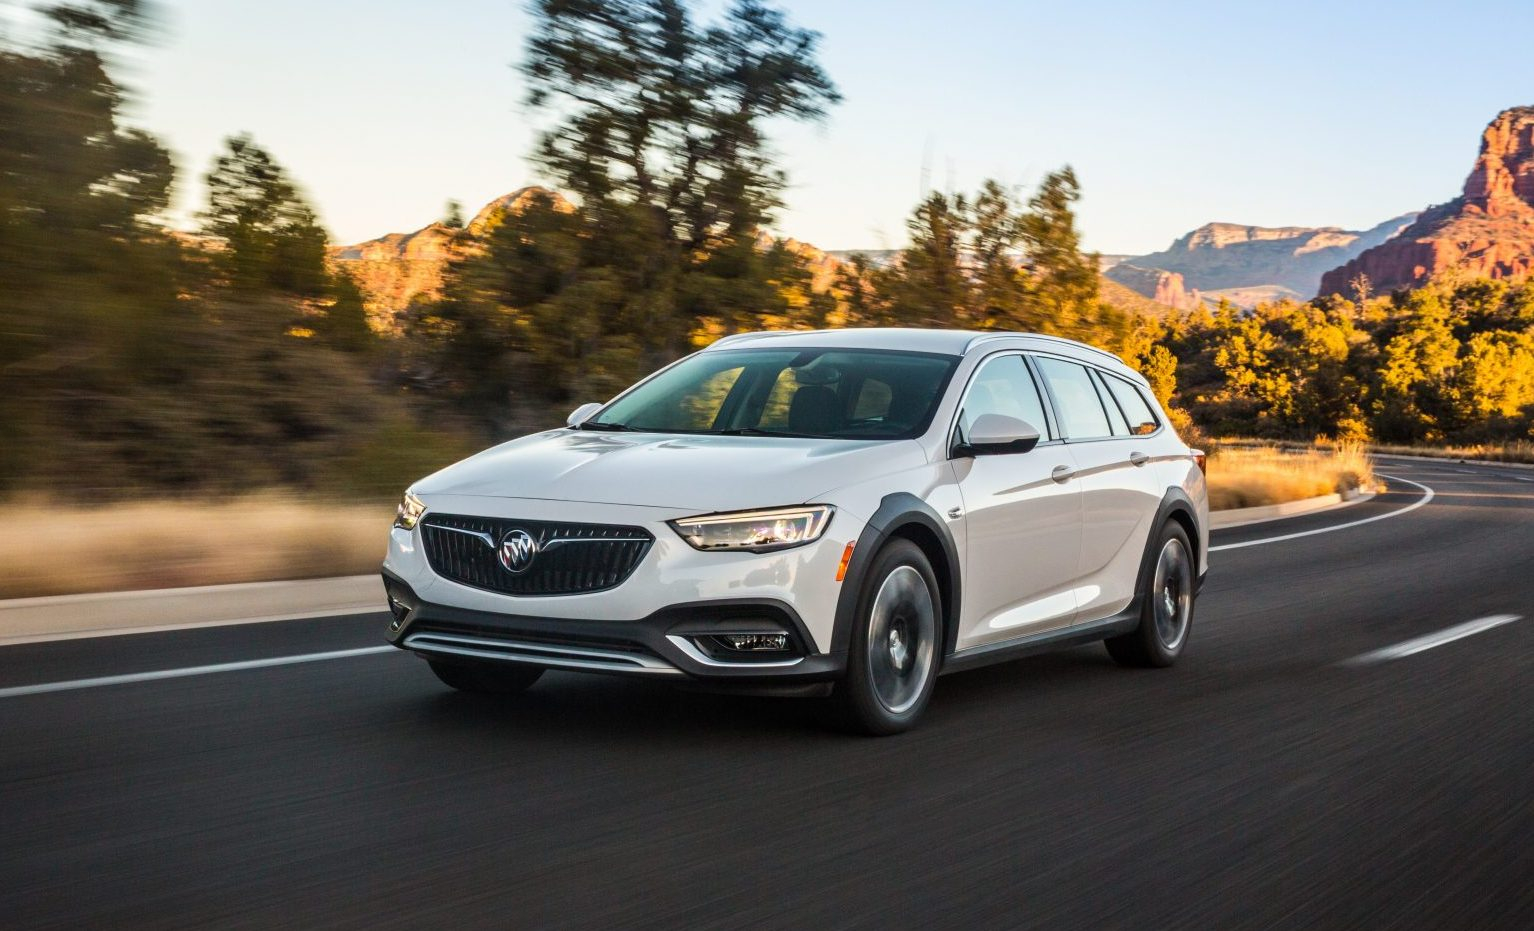 2018 Buick Regal Tourx Second Take: King Of The Wagon New 2022 Buick Regal Lease, Length, Trim Levels